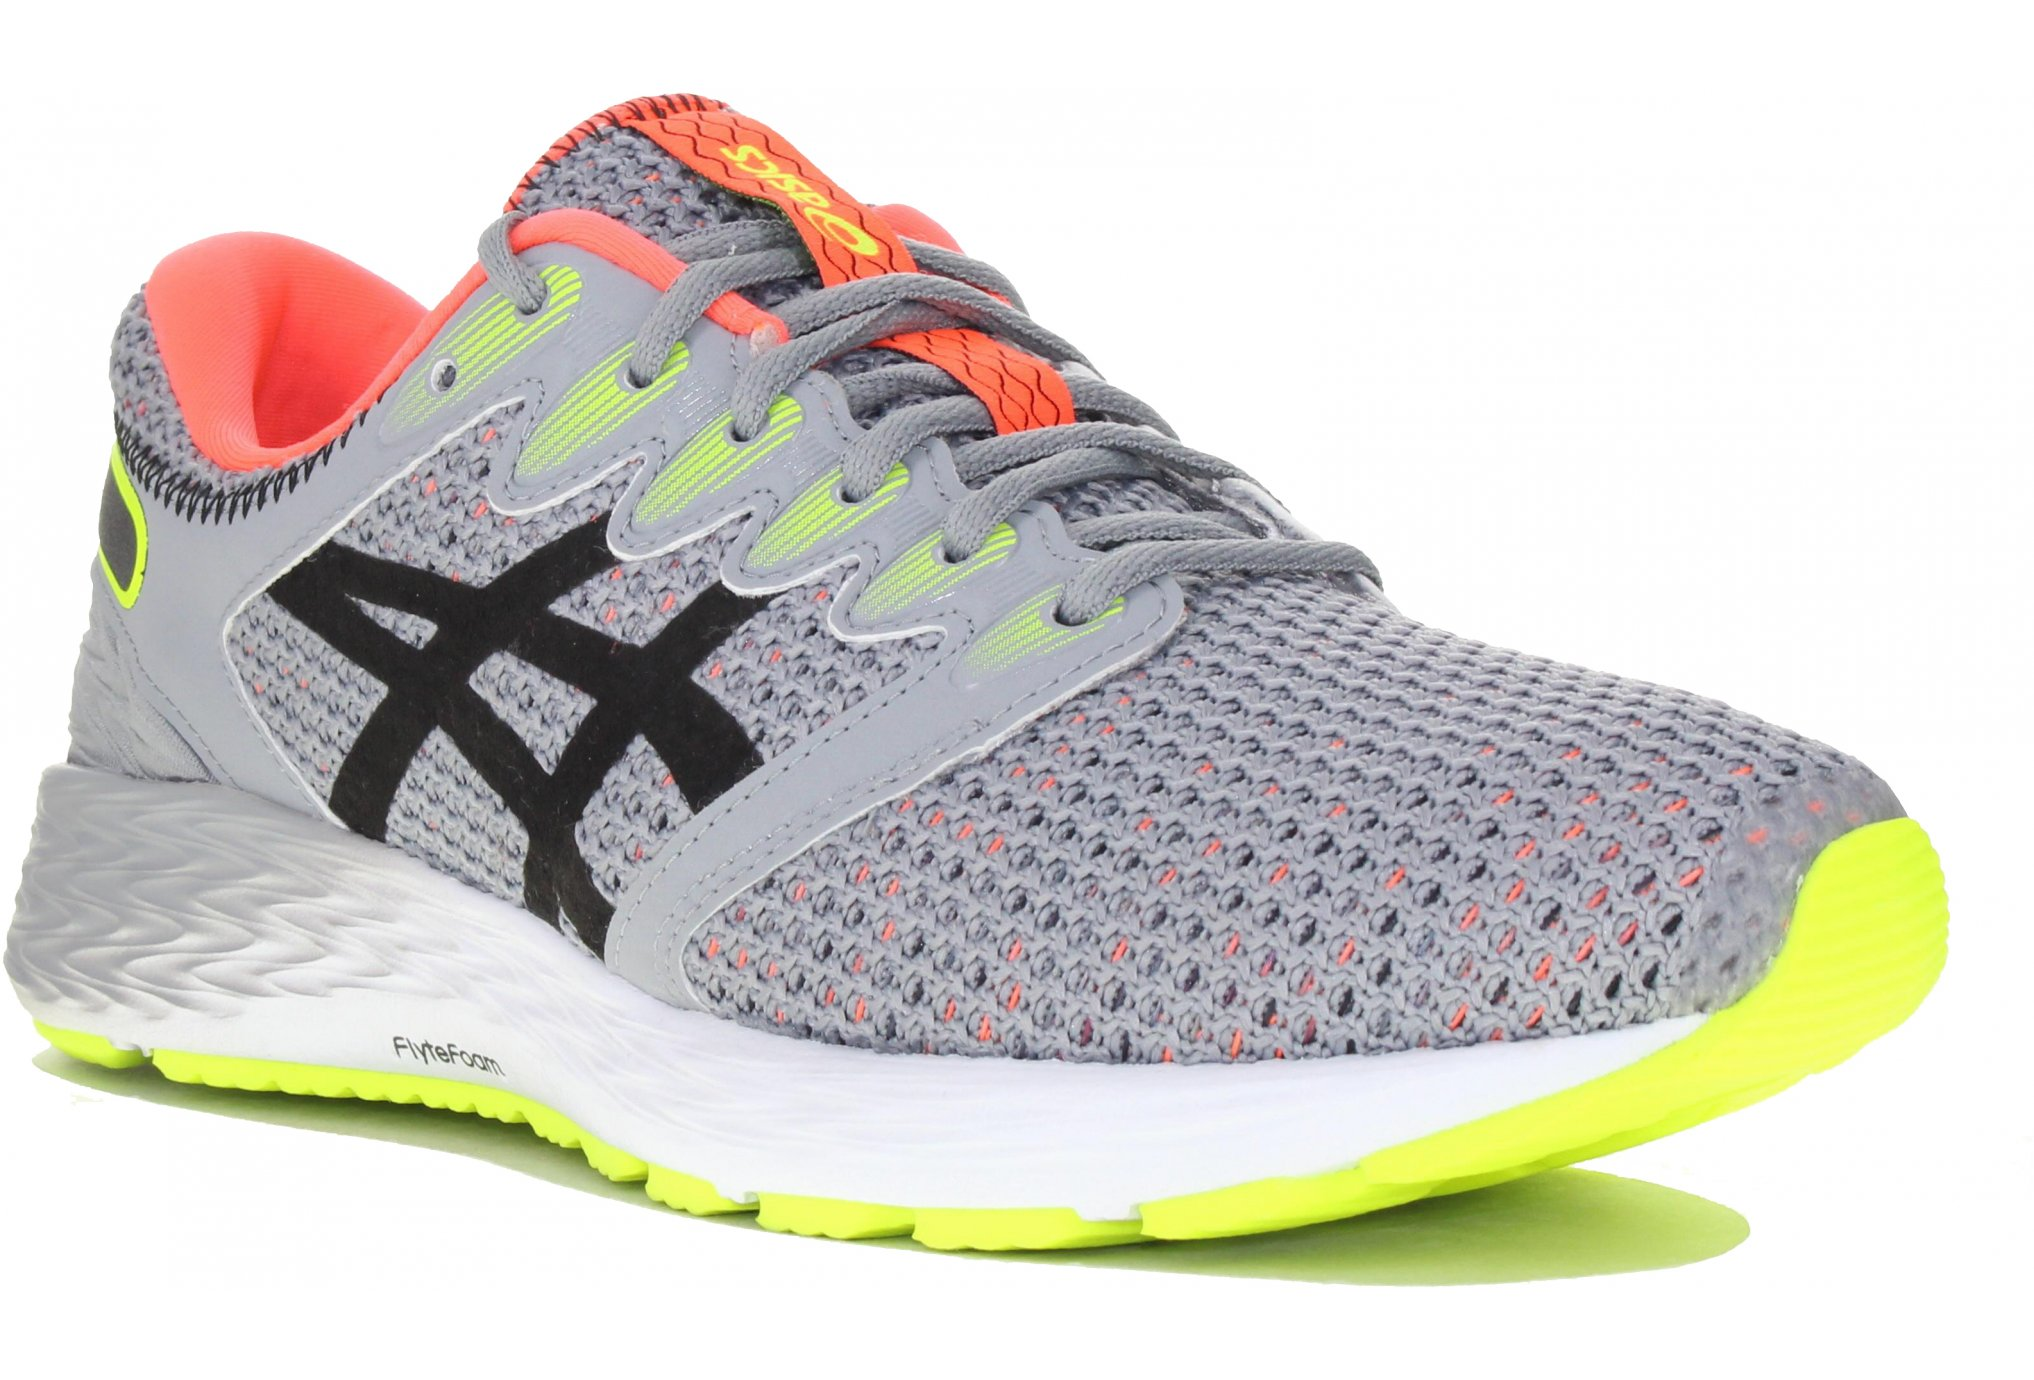 Asics RoadHawk FF 2 MX Chaussures homme